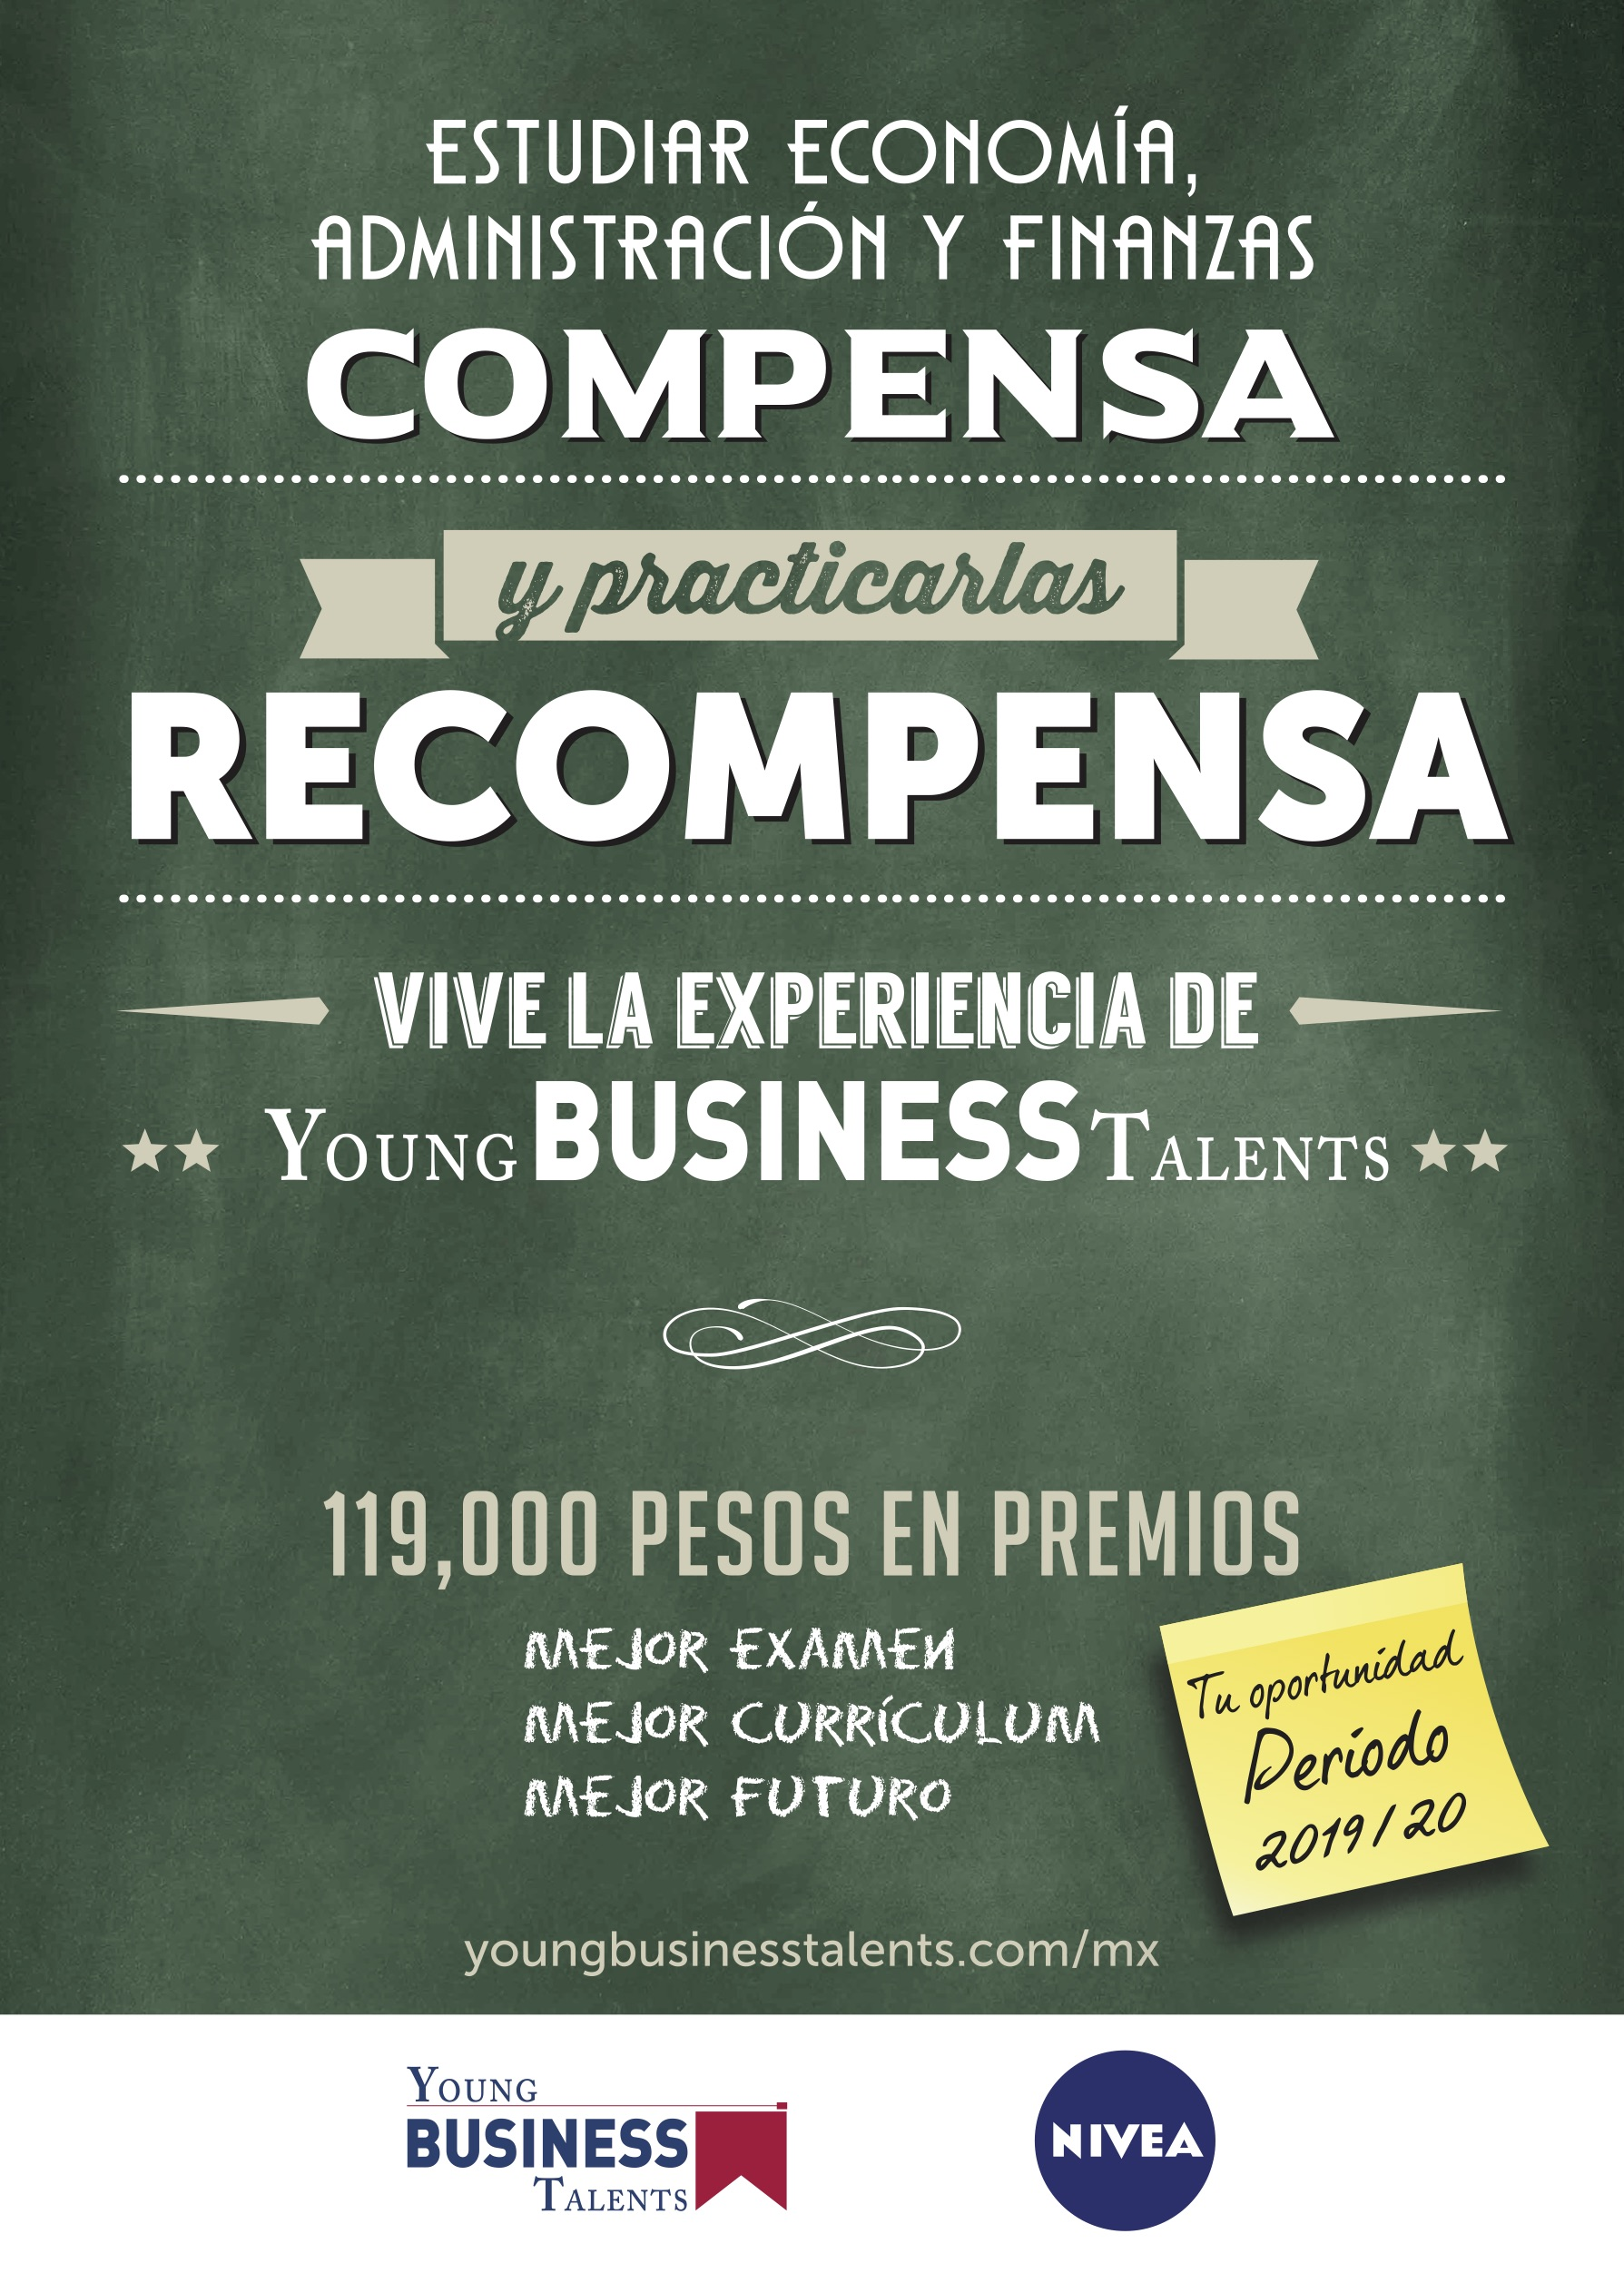 Young business talent